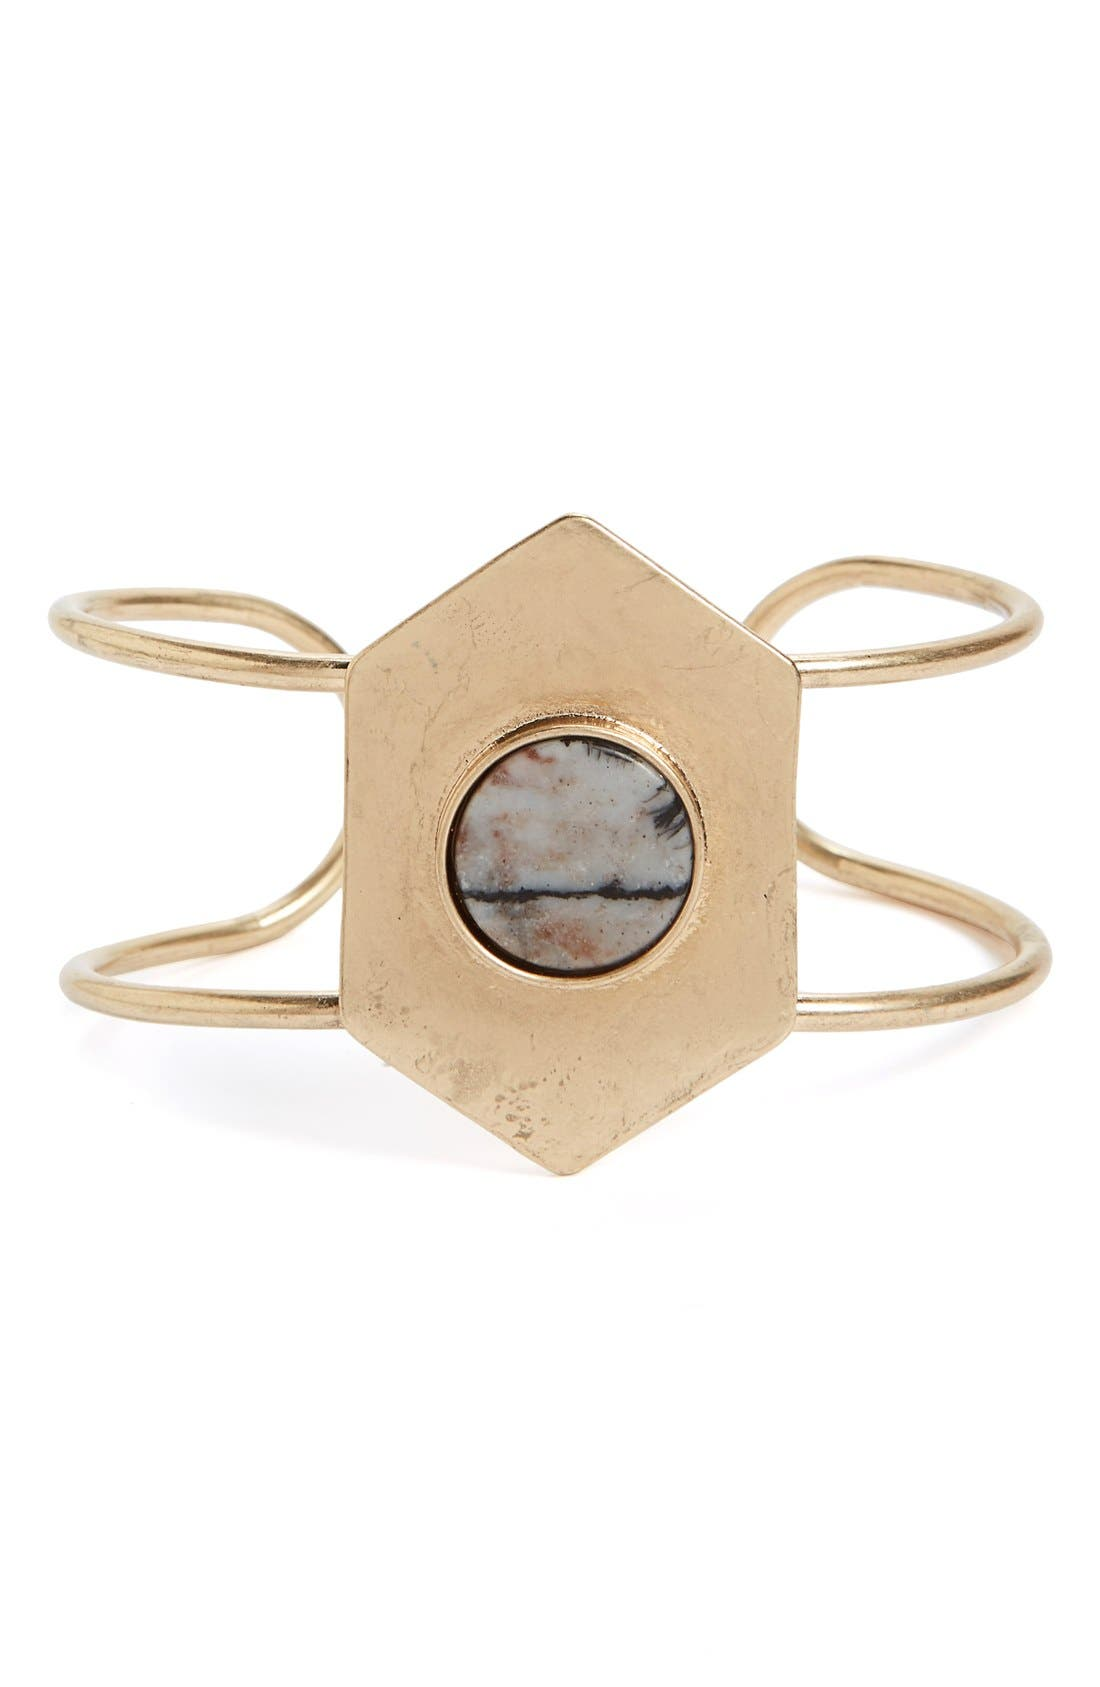 Alternate Image 1 Selected - Sole Society Deco Stone Cuff